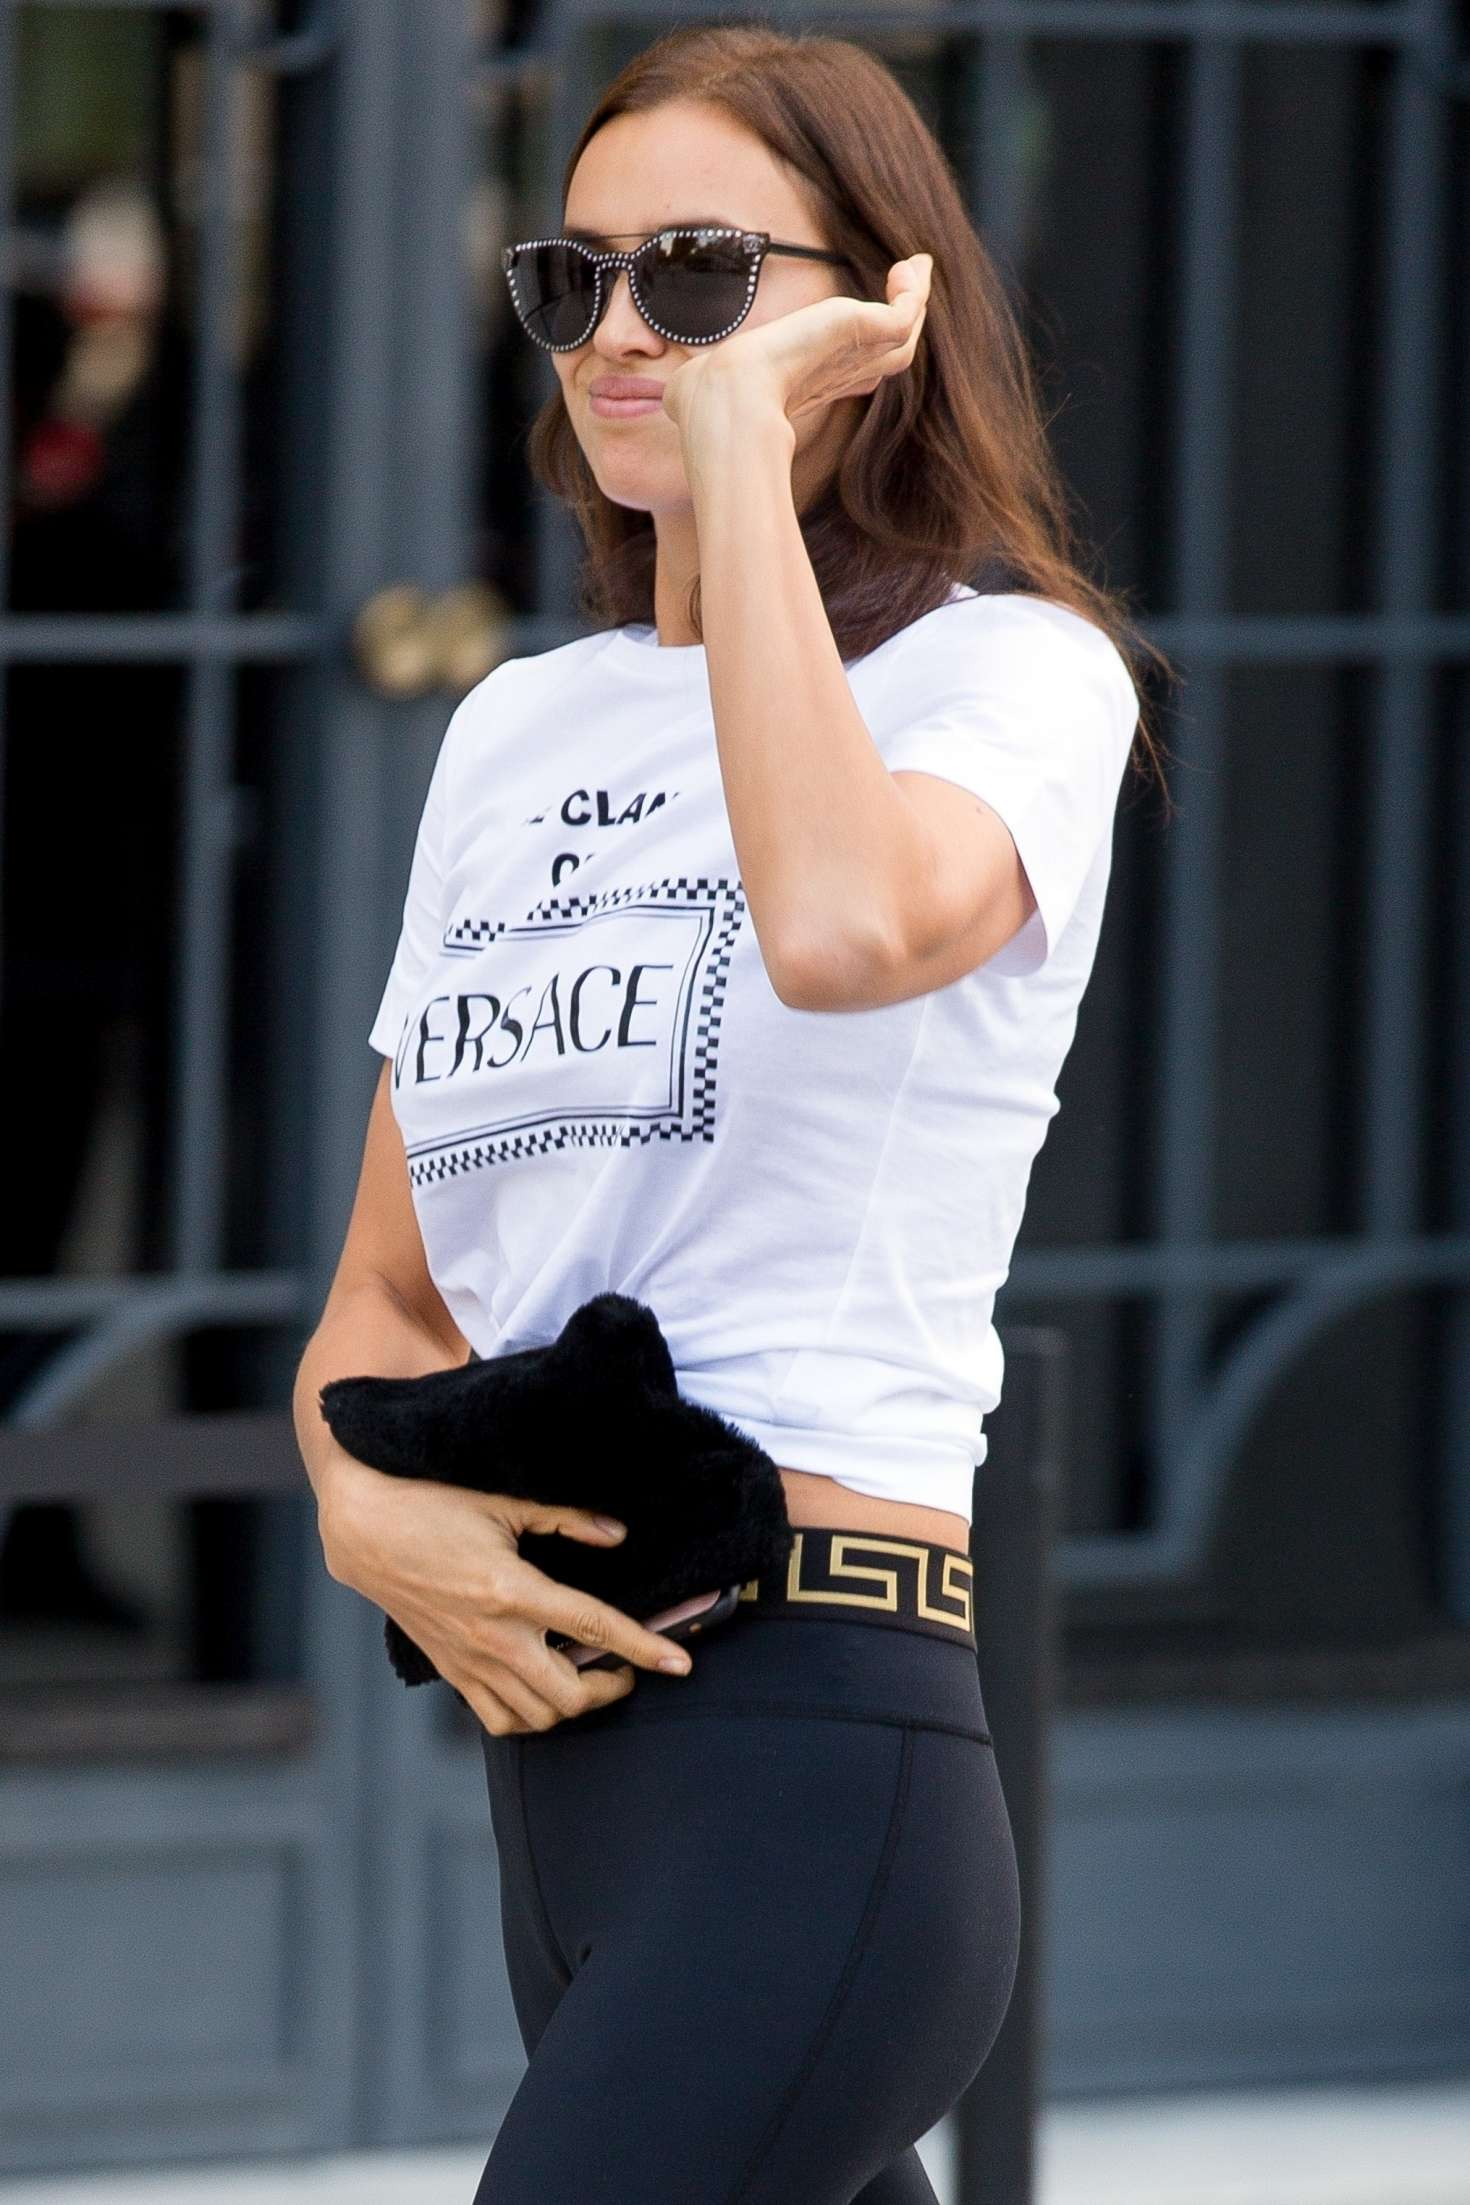 Irina Shayk – Arriving at the Versace Fashion Show in Milan